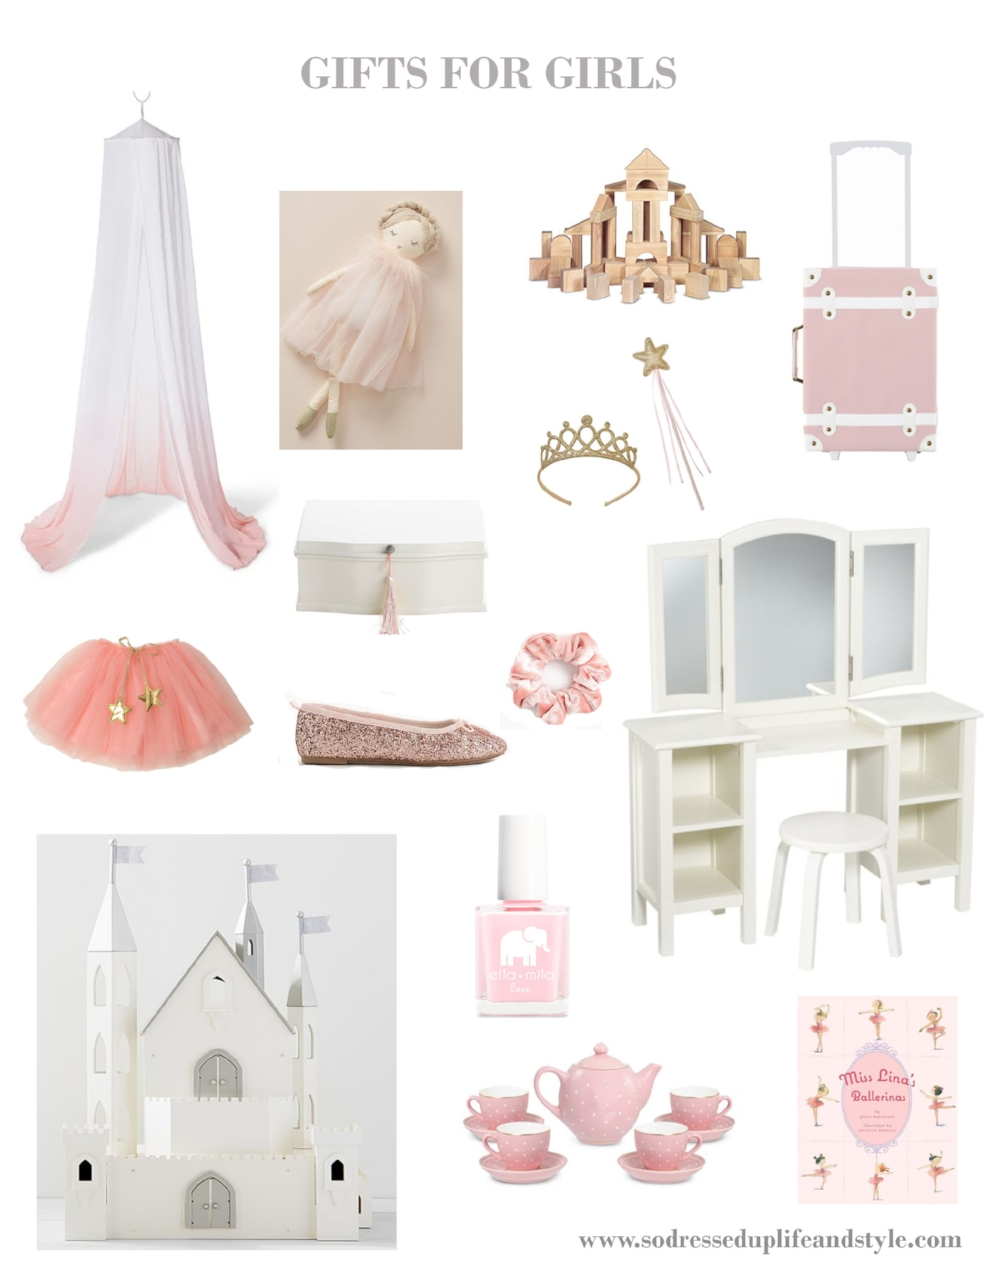 So Dressed Up 2018 Gifts For Girls.jpg